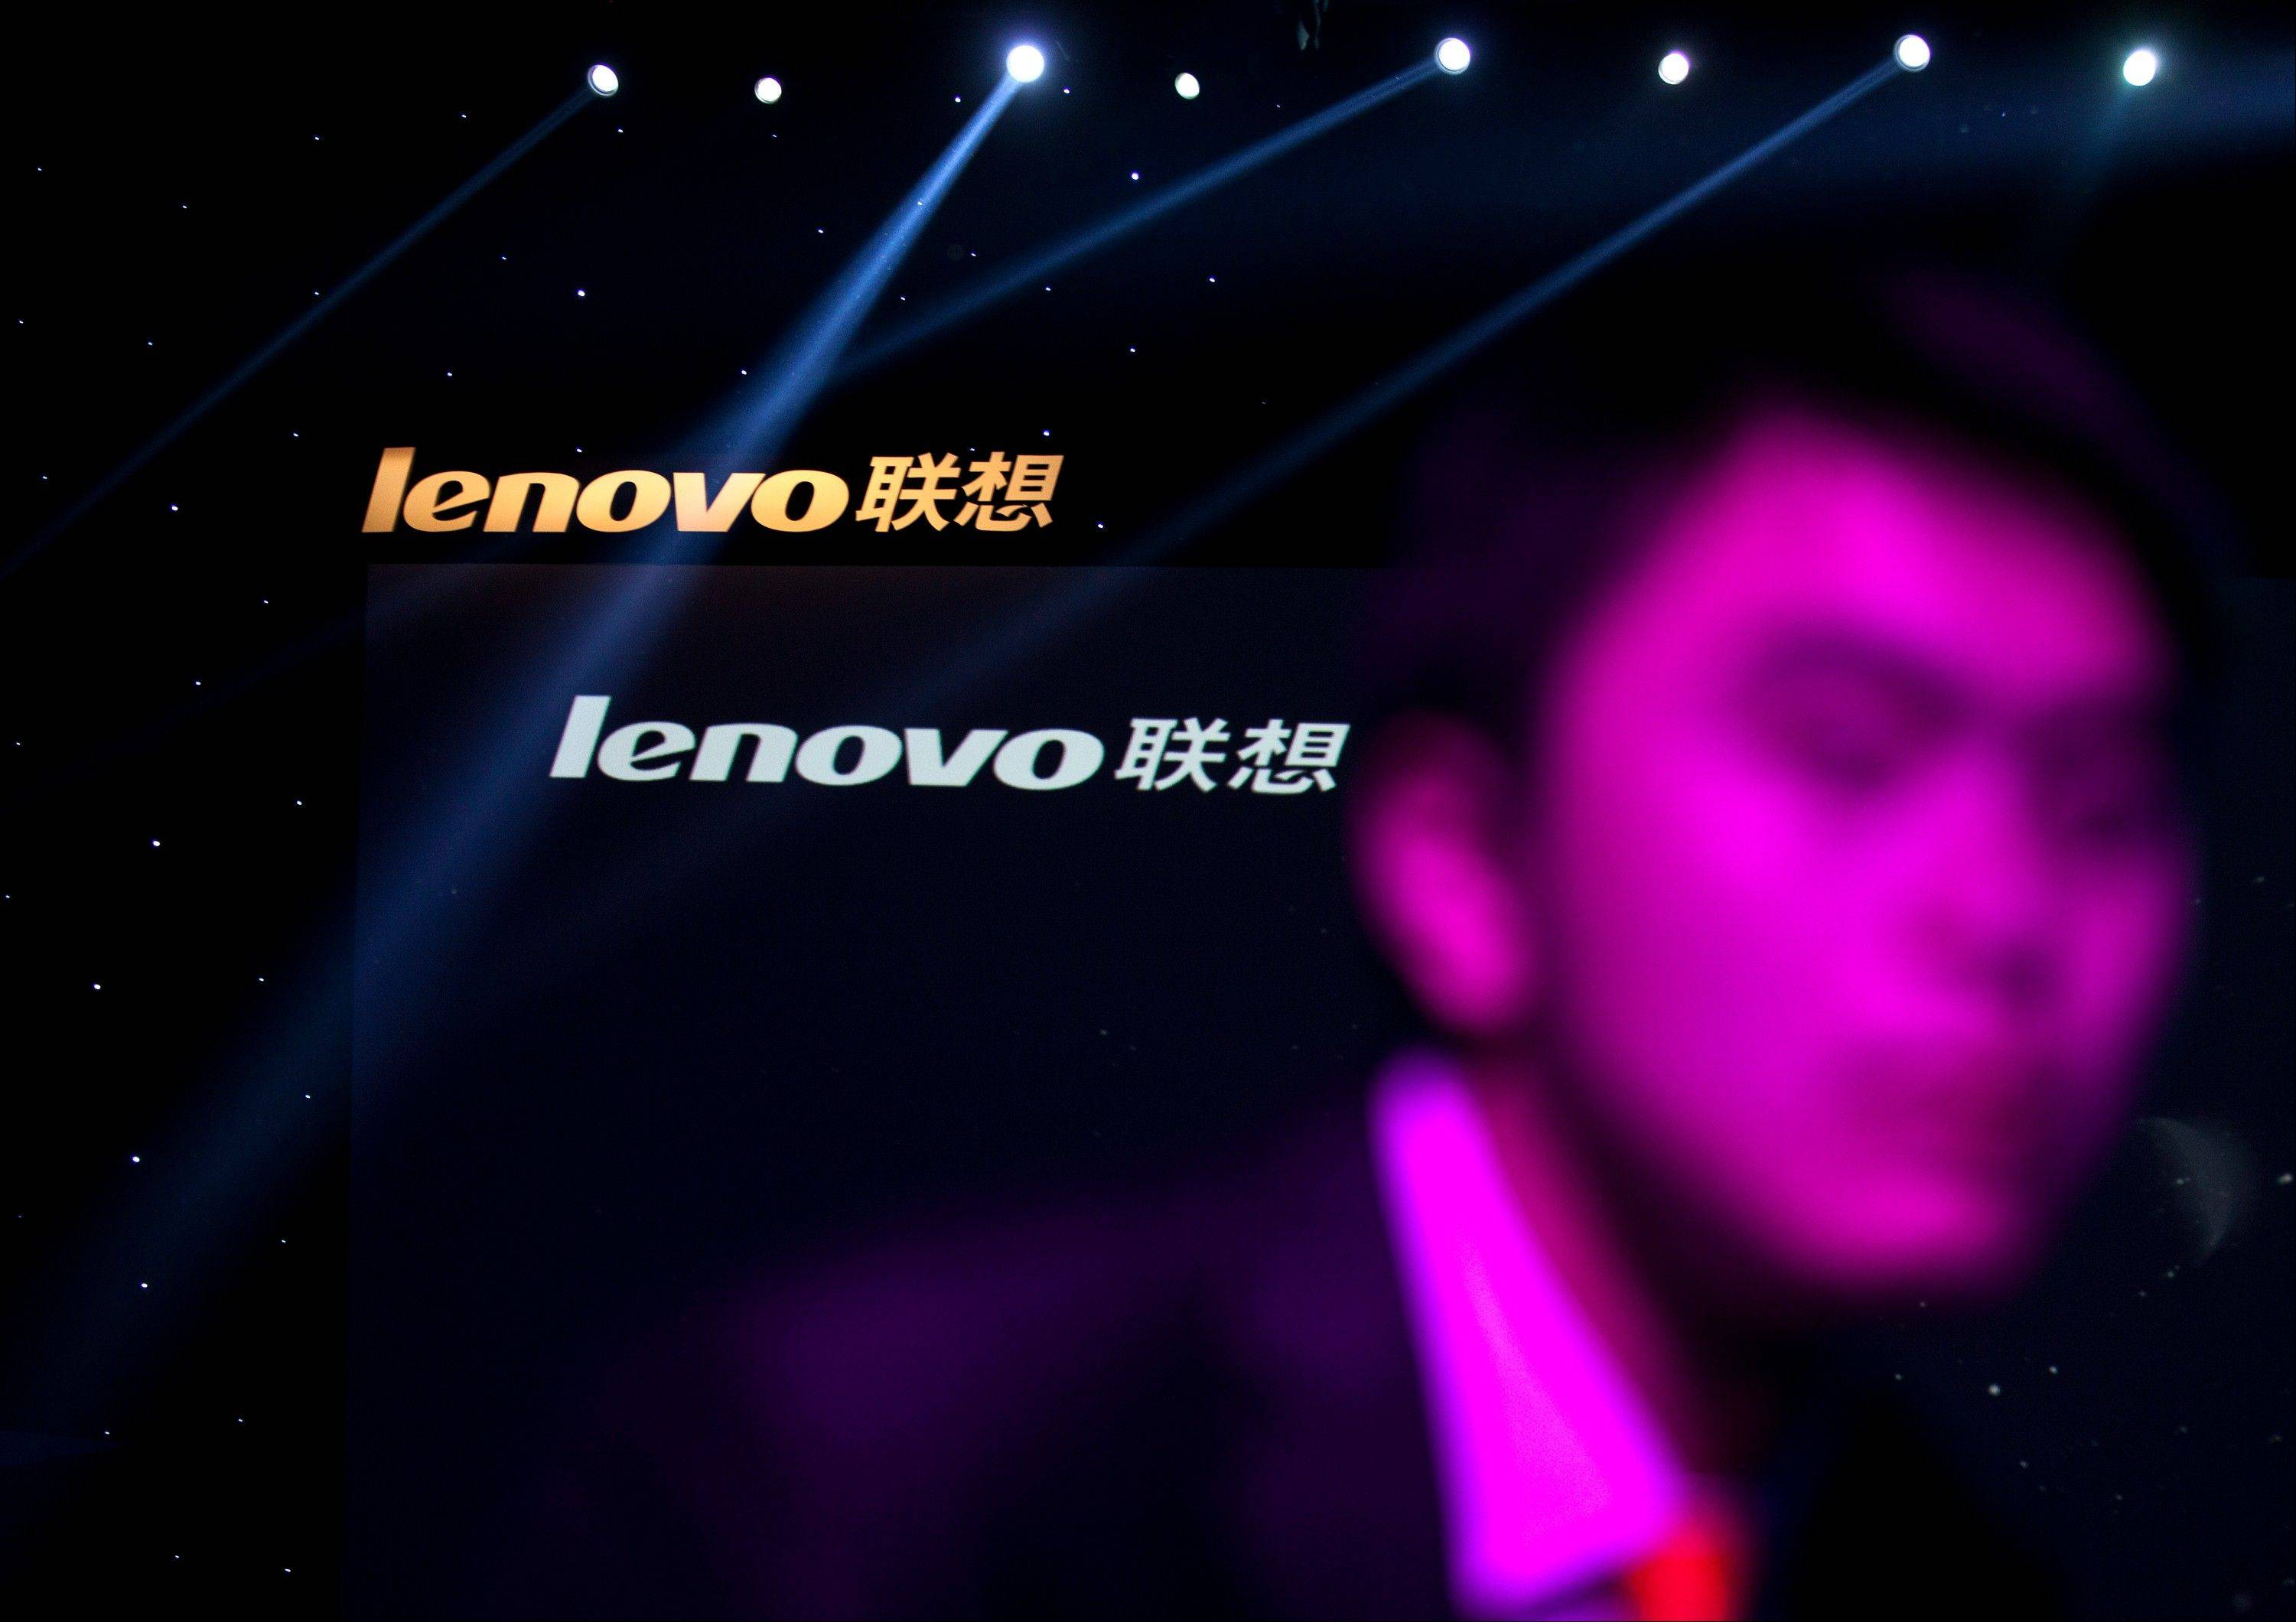 A Lenovo employee, front, walks near the company logos during a Lenovo promotional event in Beijing, China.